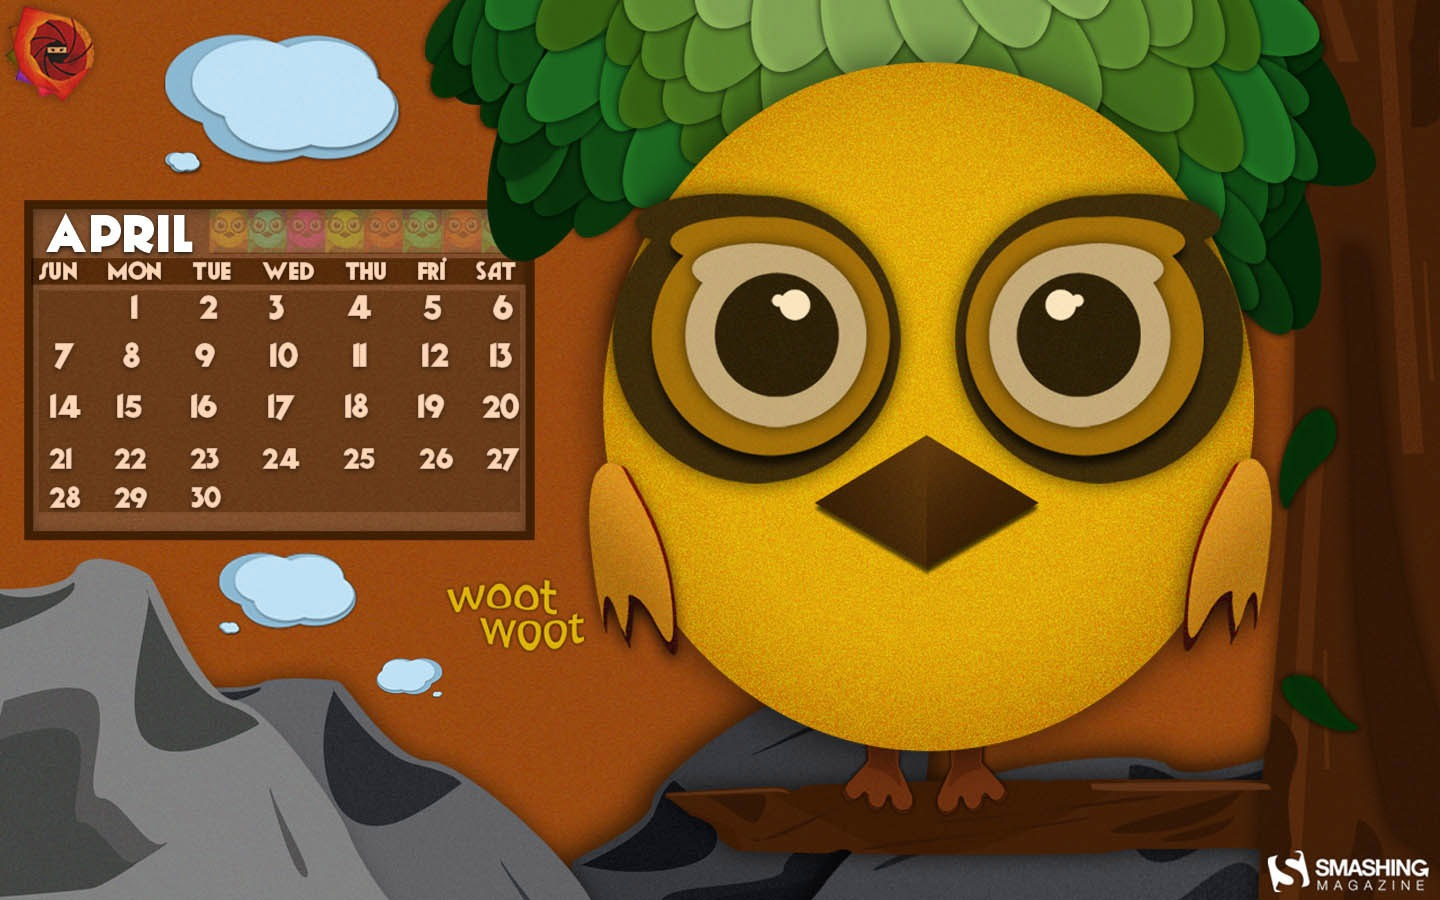 Month Calendar Wallpaper 32304